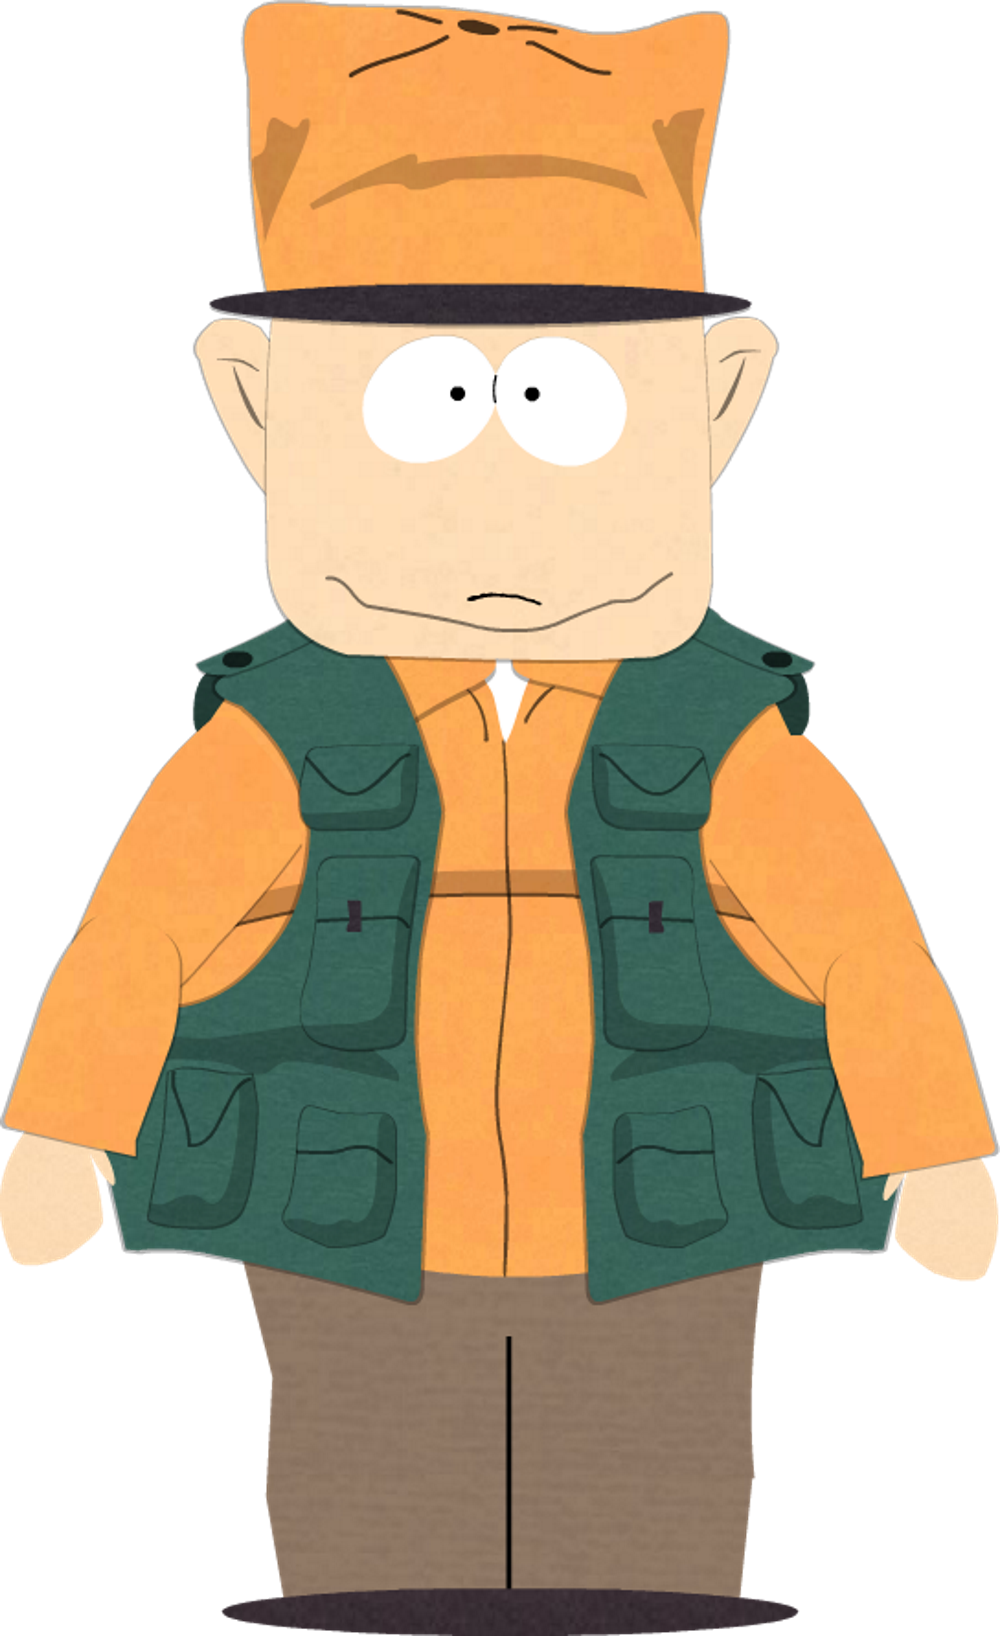 Jimbo kern south park archives fandom powered by wikia current publicscrutiny Images